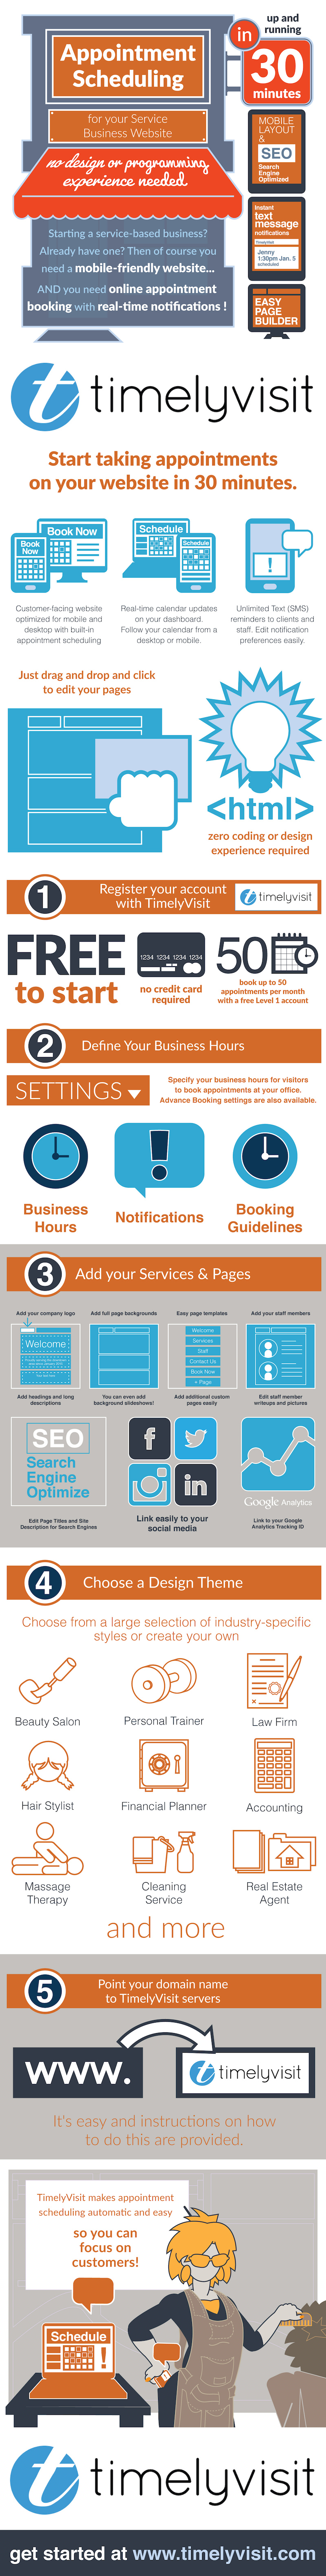 How to Develop a Website for Your Service Business in 30 Minutes